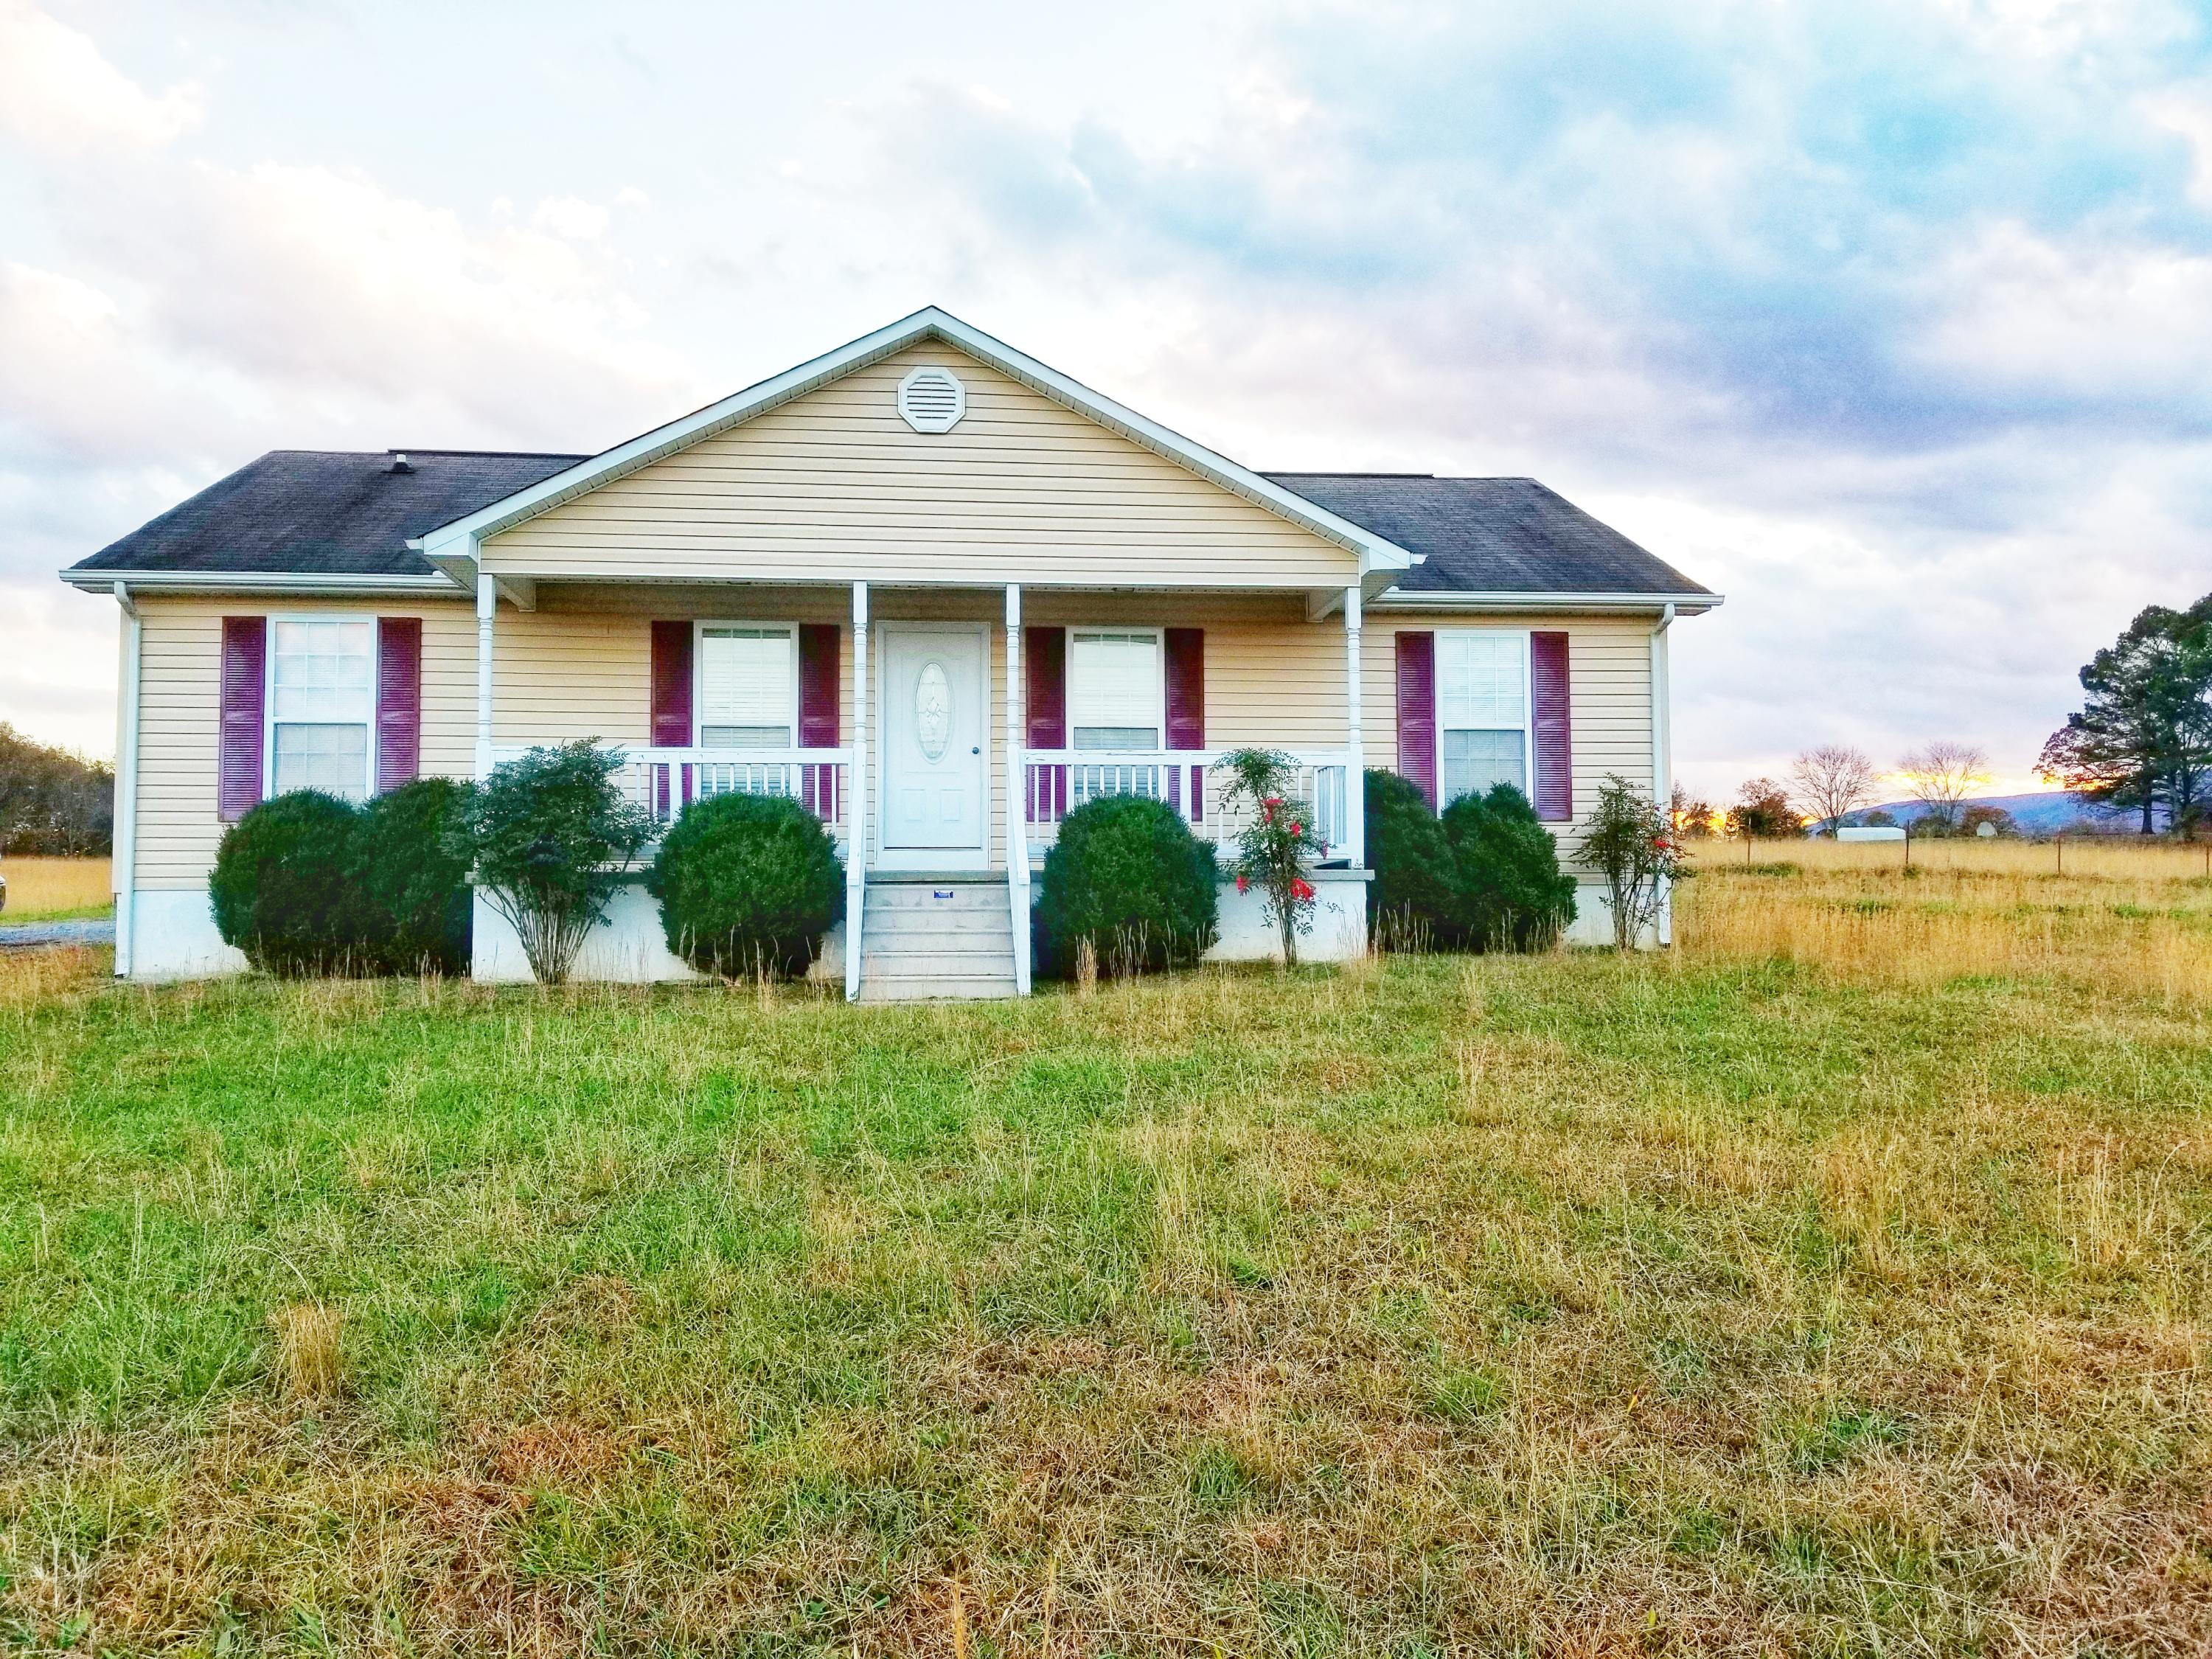 170 Sherry Dr, Whitwell, TN 37397